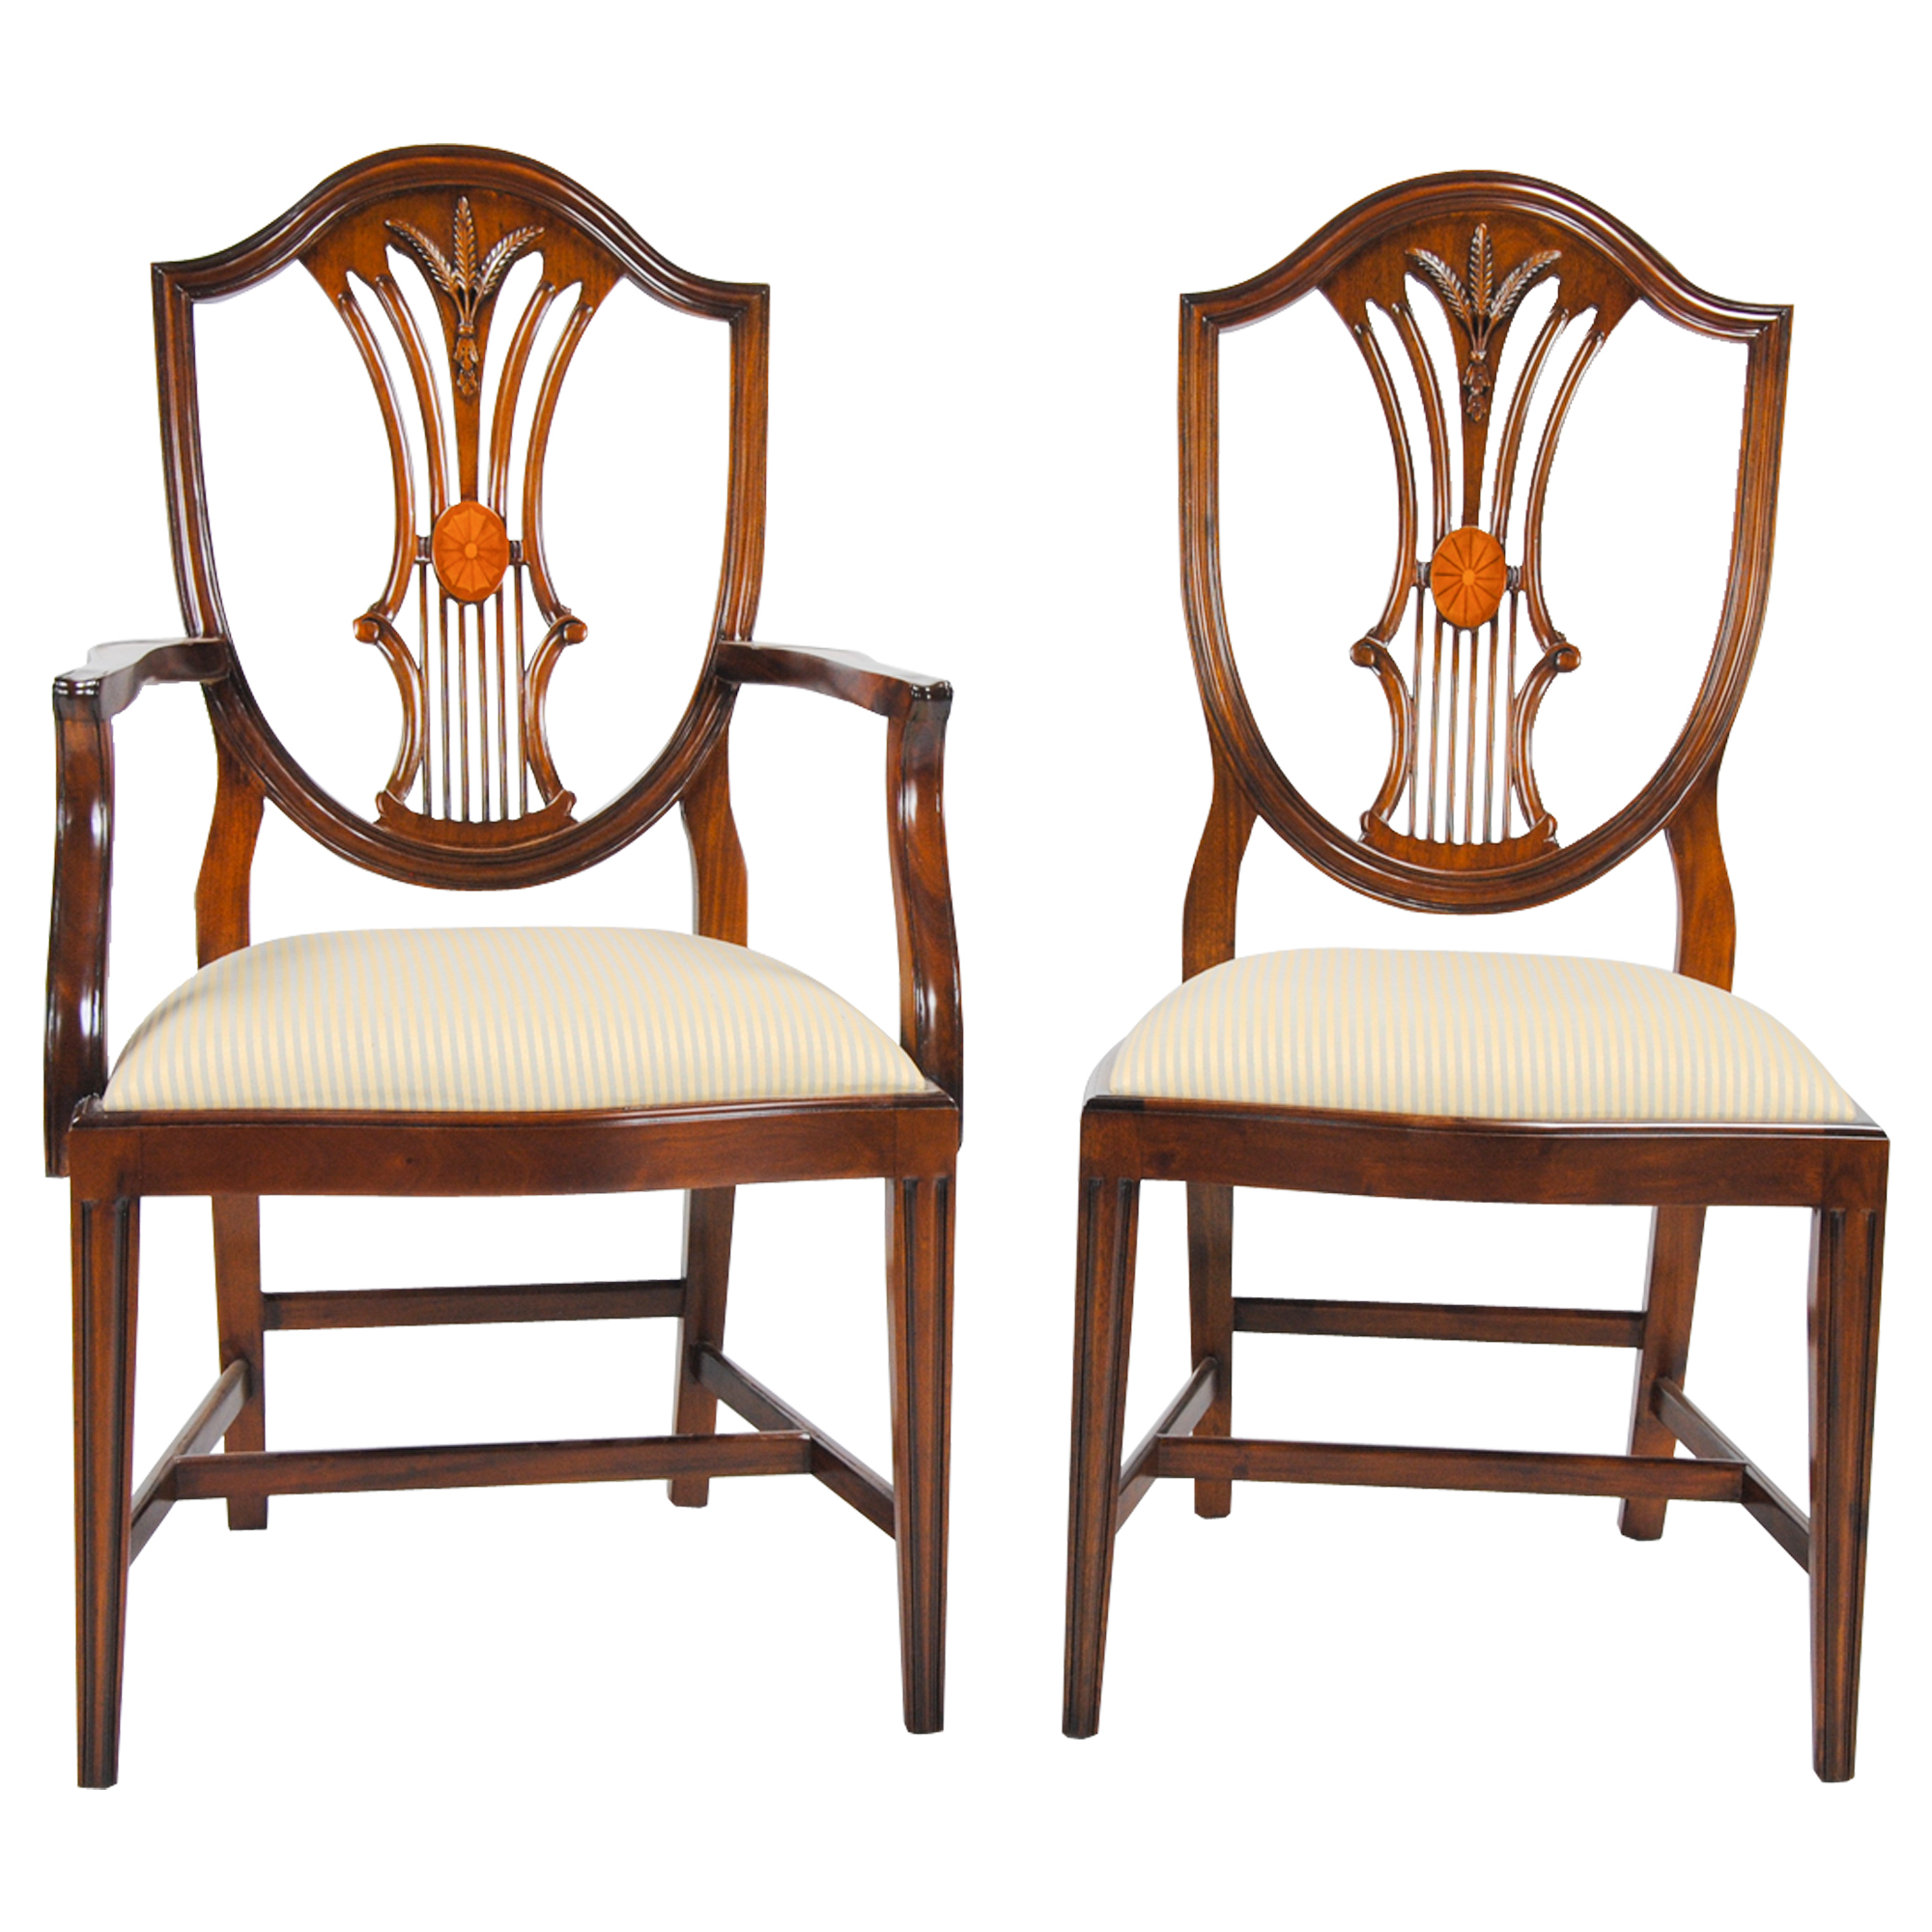 Shield Back Dining Room Chairs: Inlaid Shield Back Chairs, Set Of 10, Niagara Furniture